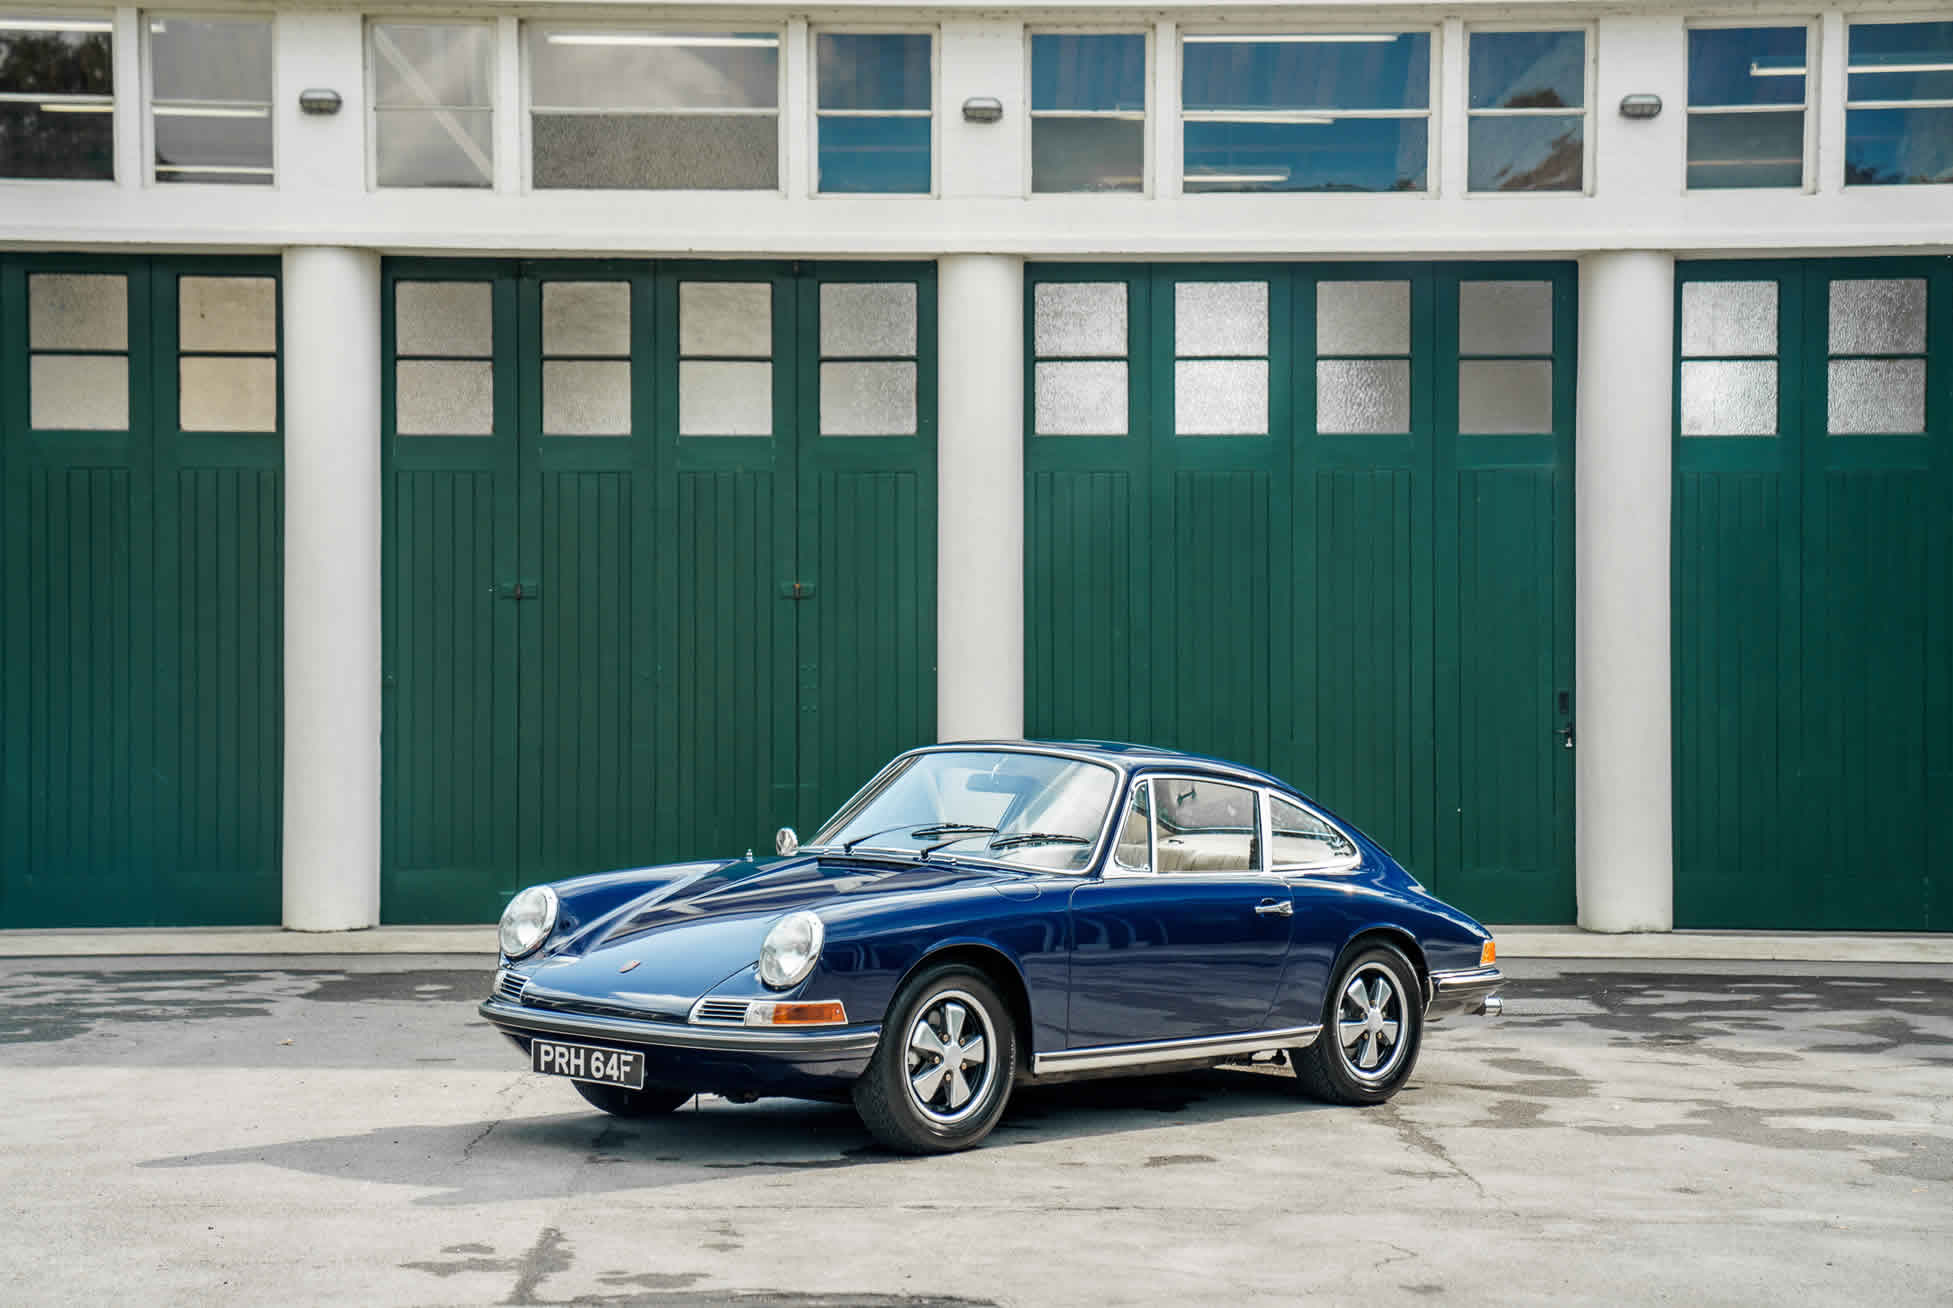 1968 Porsche 911 S For Sale. Sports Purpose Porsche Specialists, Bicester Heritage, Oxon, UK